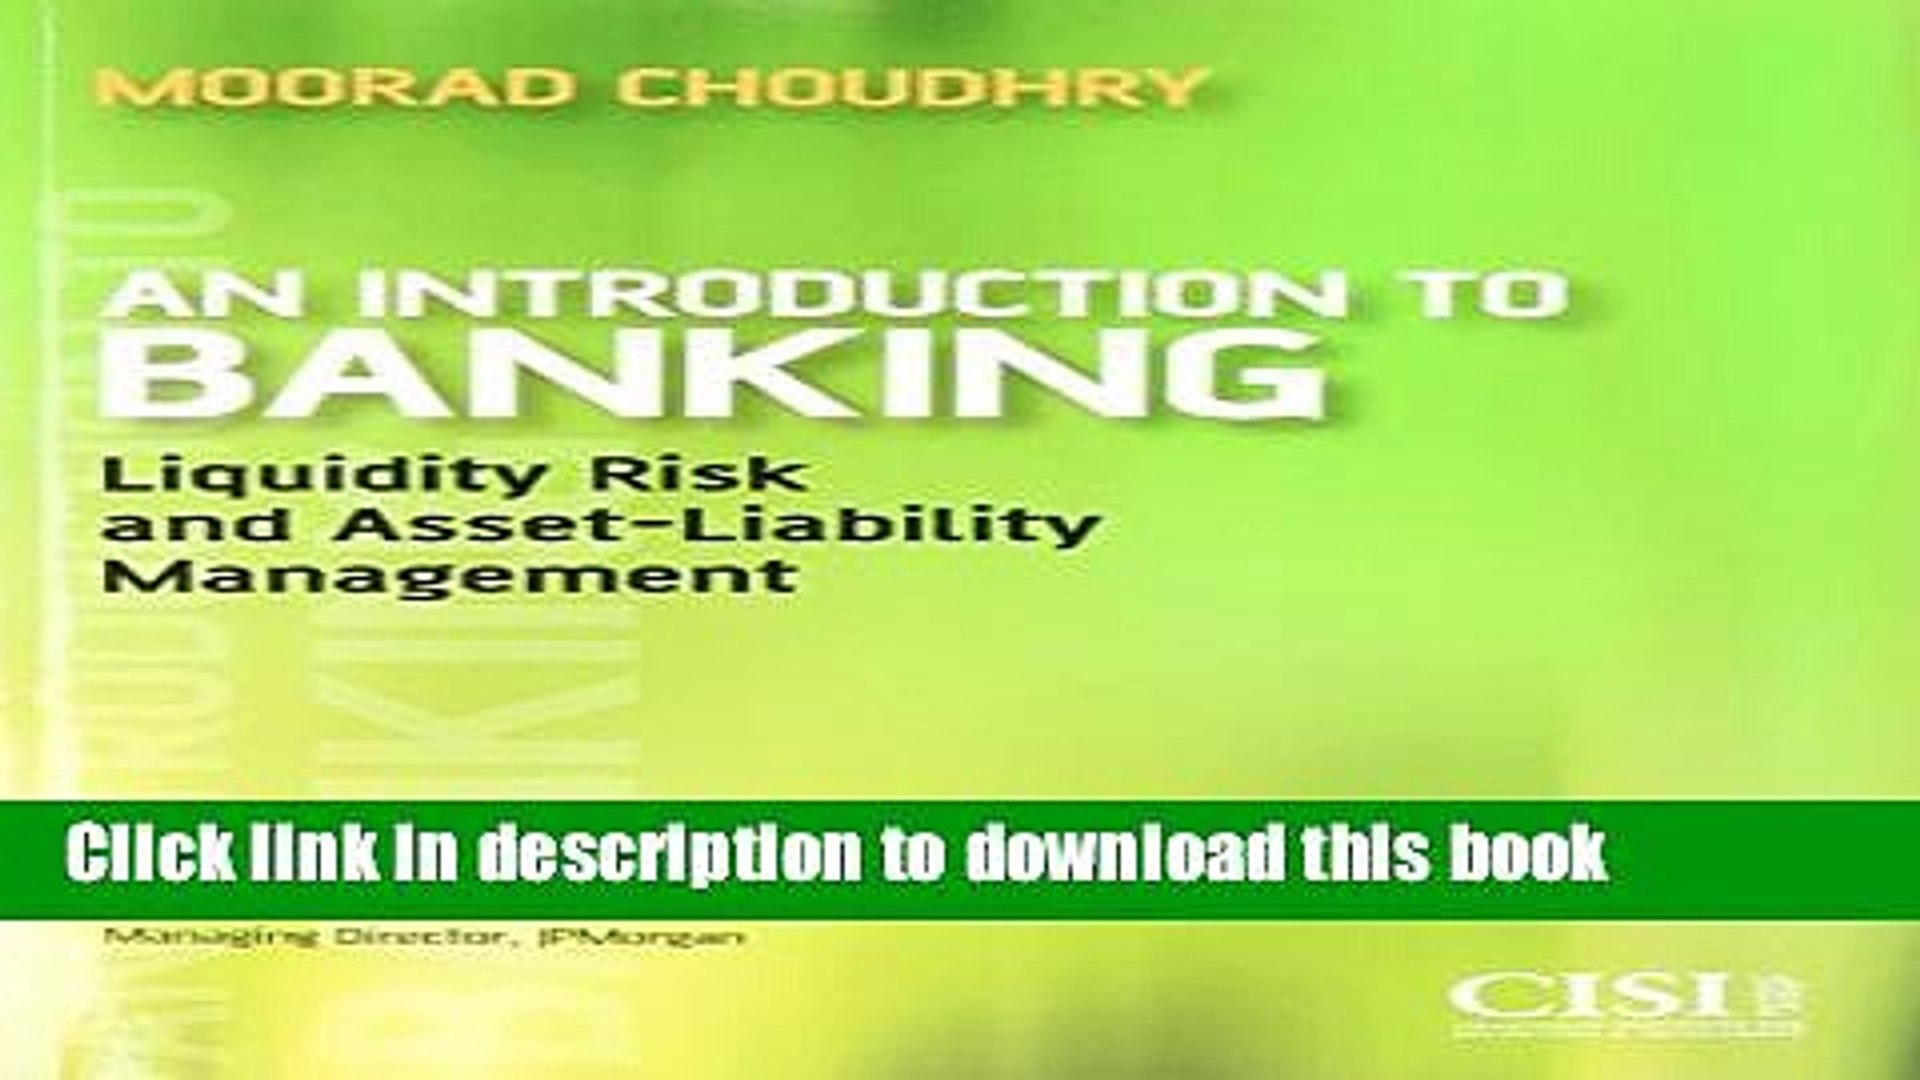 [Popular] An Introduction to Banking: Liquidity Risk and Asset-Liability Management Hardcover Online